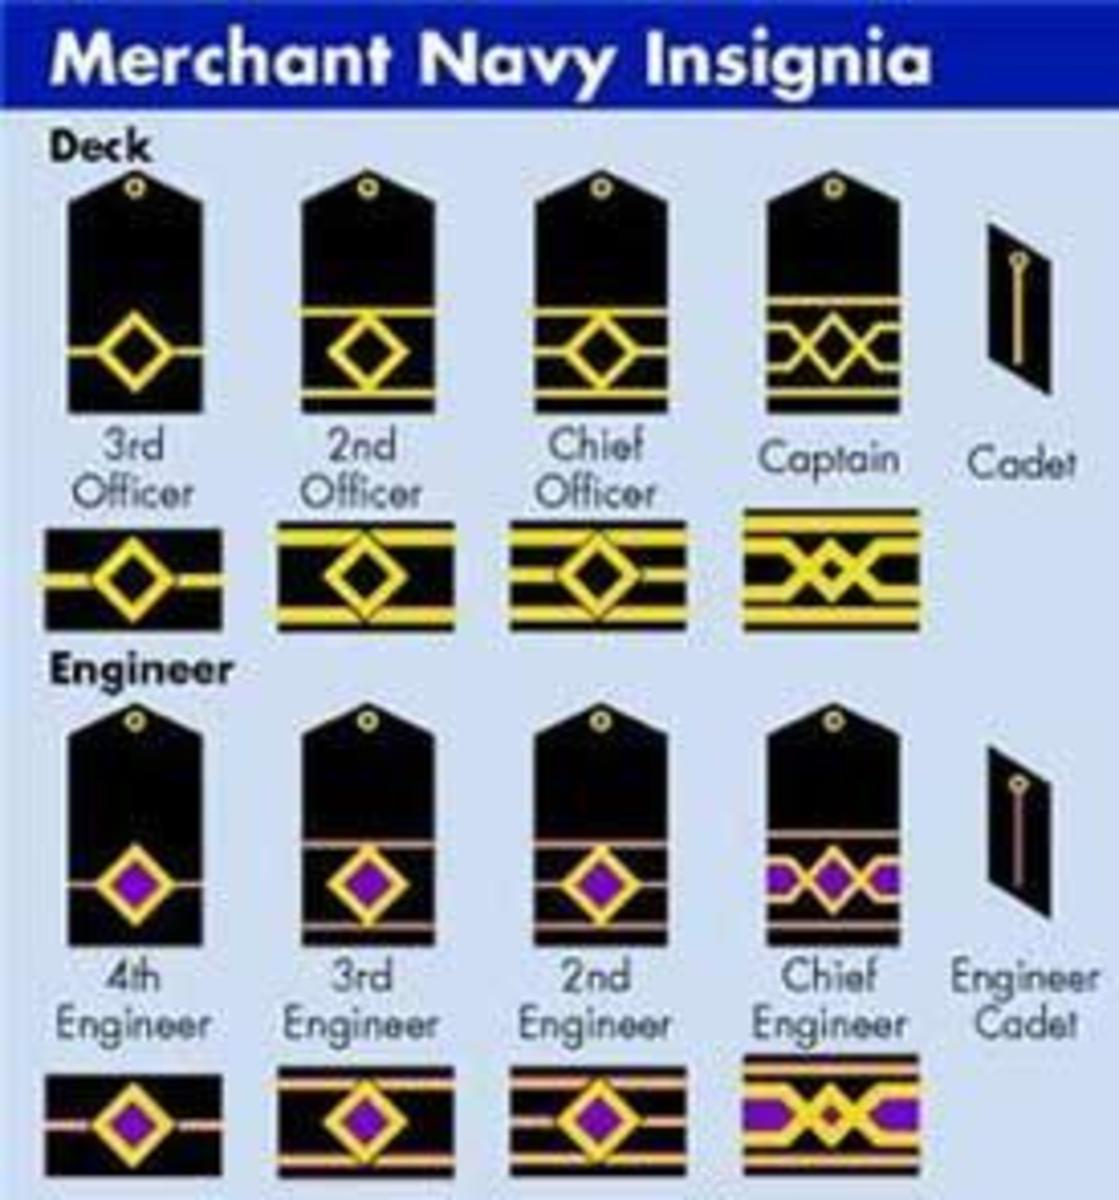 The Different Ranks of Seafarers